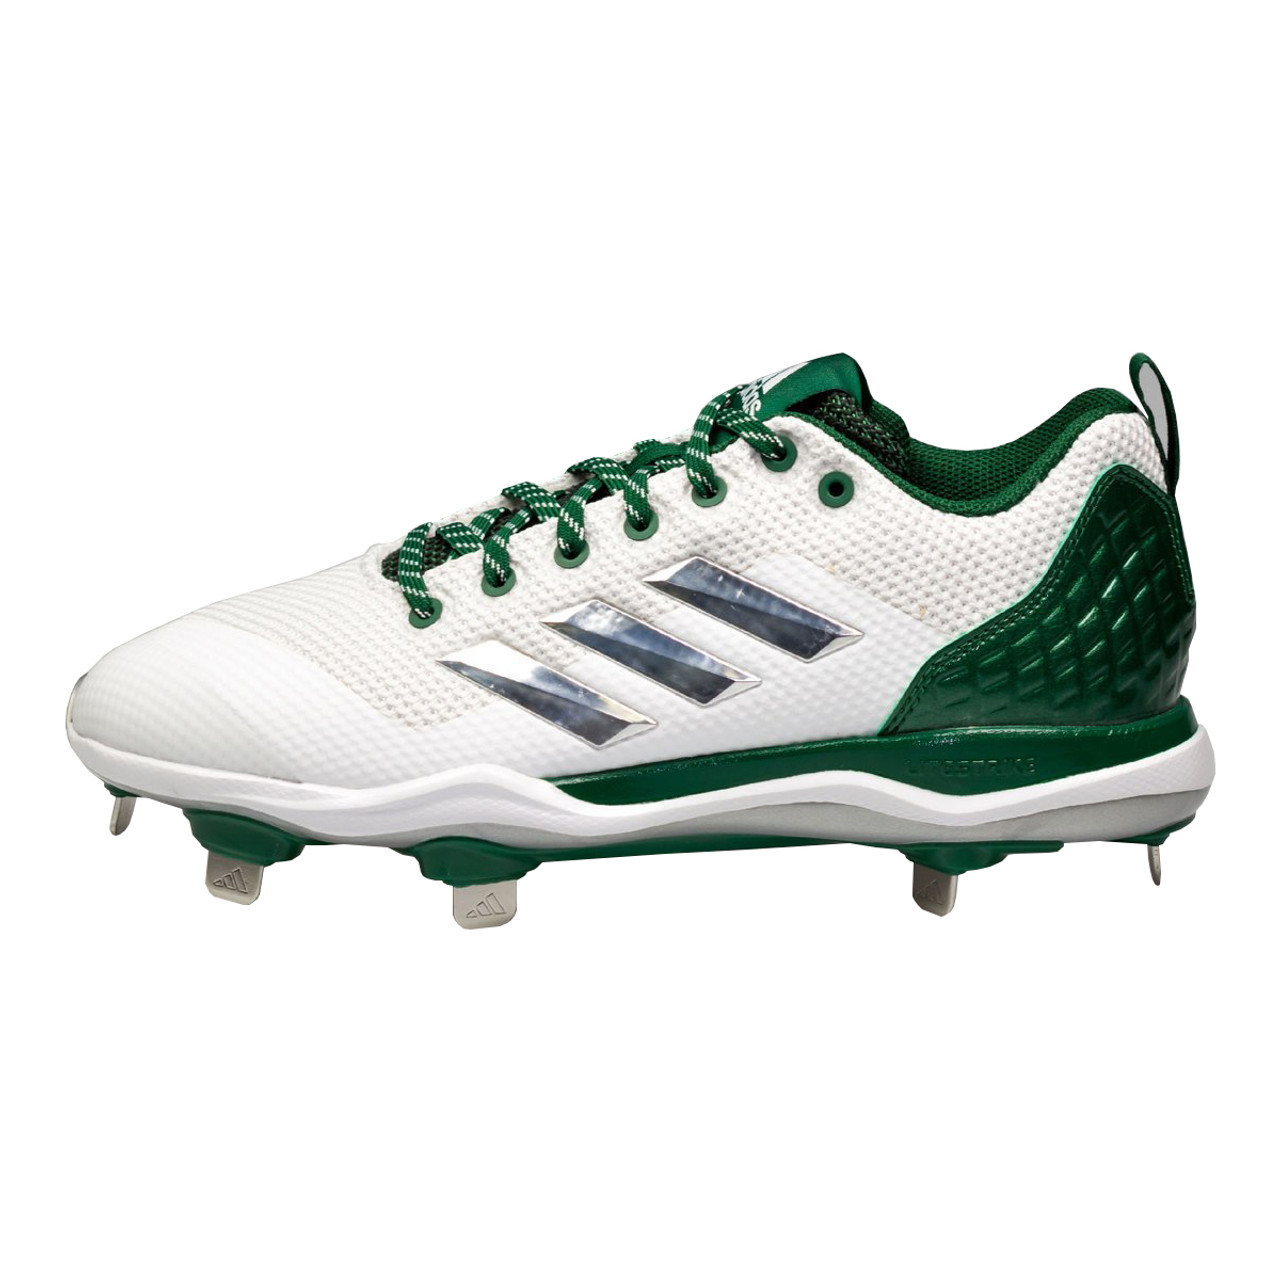 new product f74ab f222d Adidas Power Alley 5 Men s Baseball Cleats B39191 ...